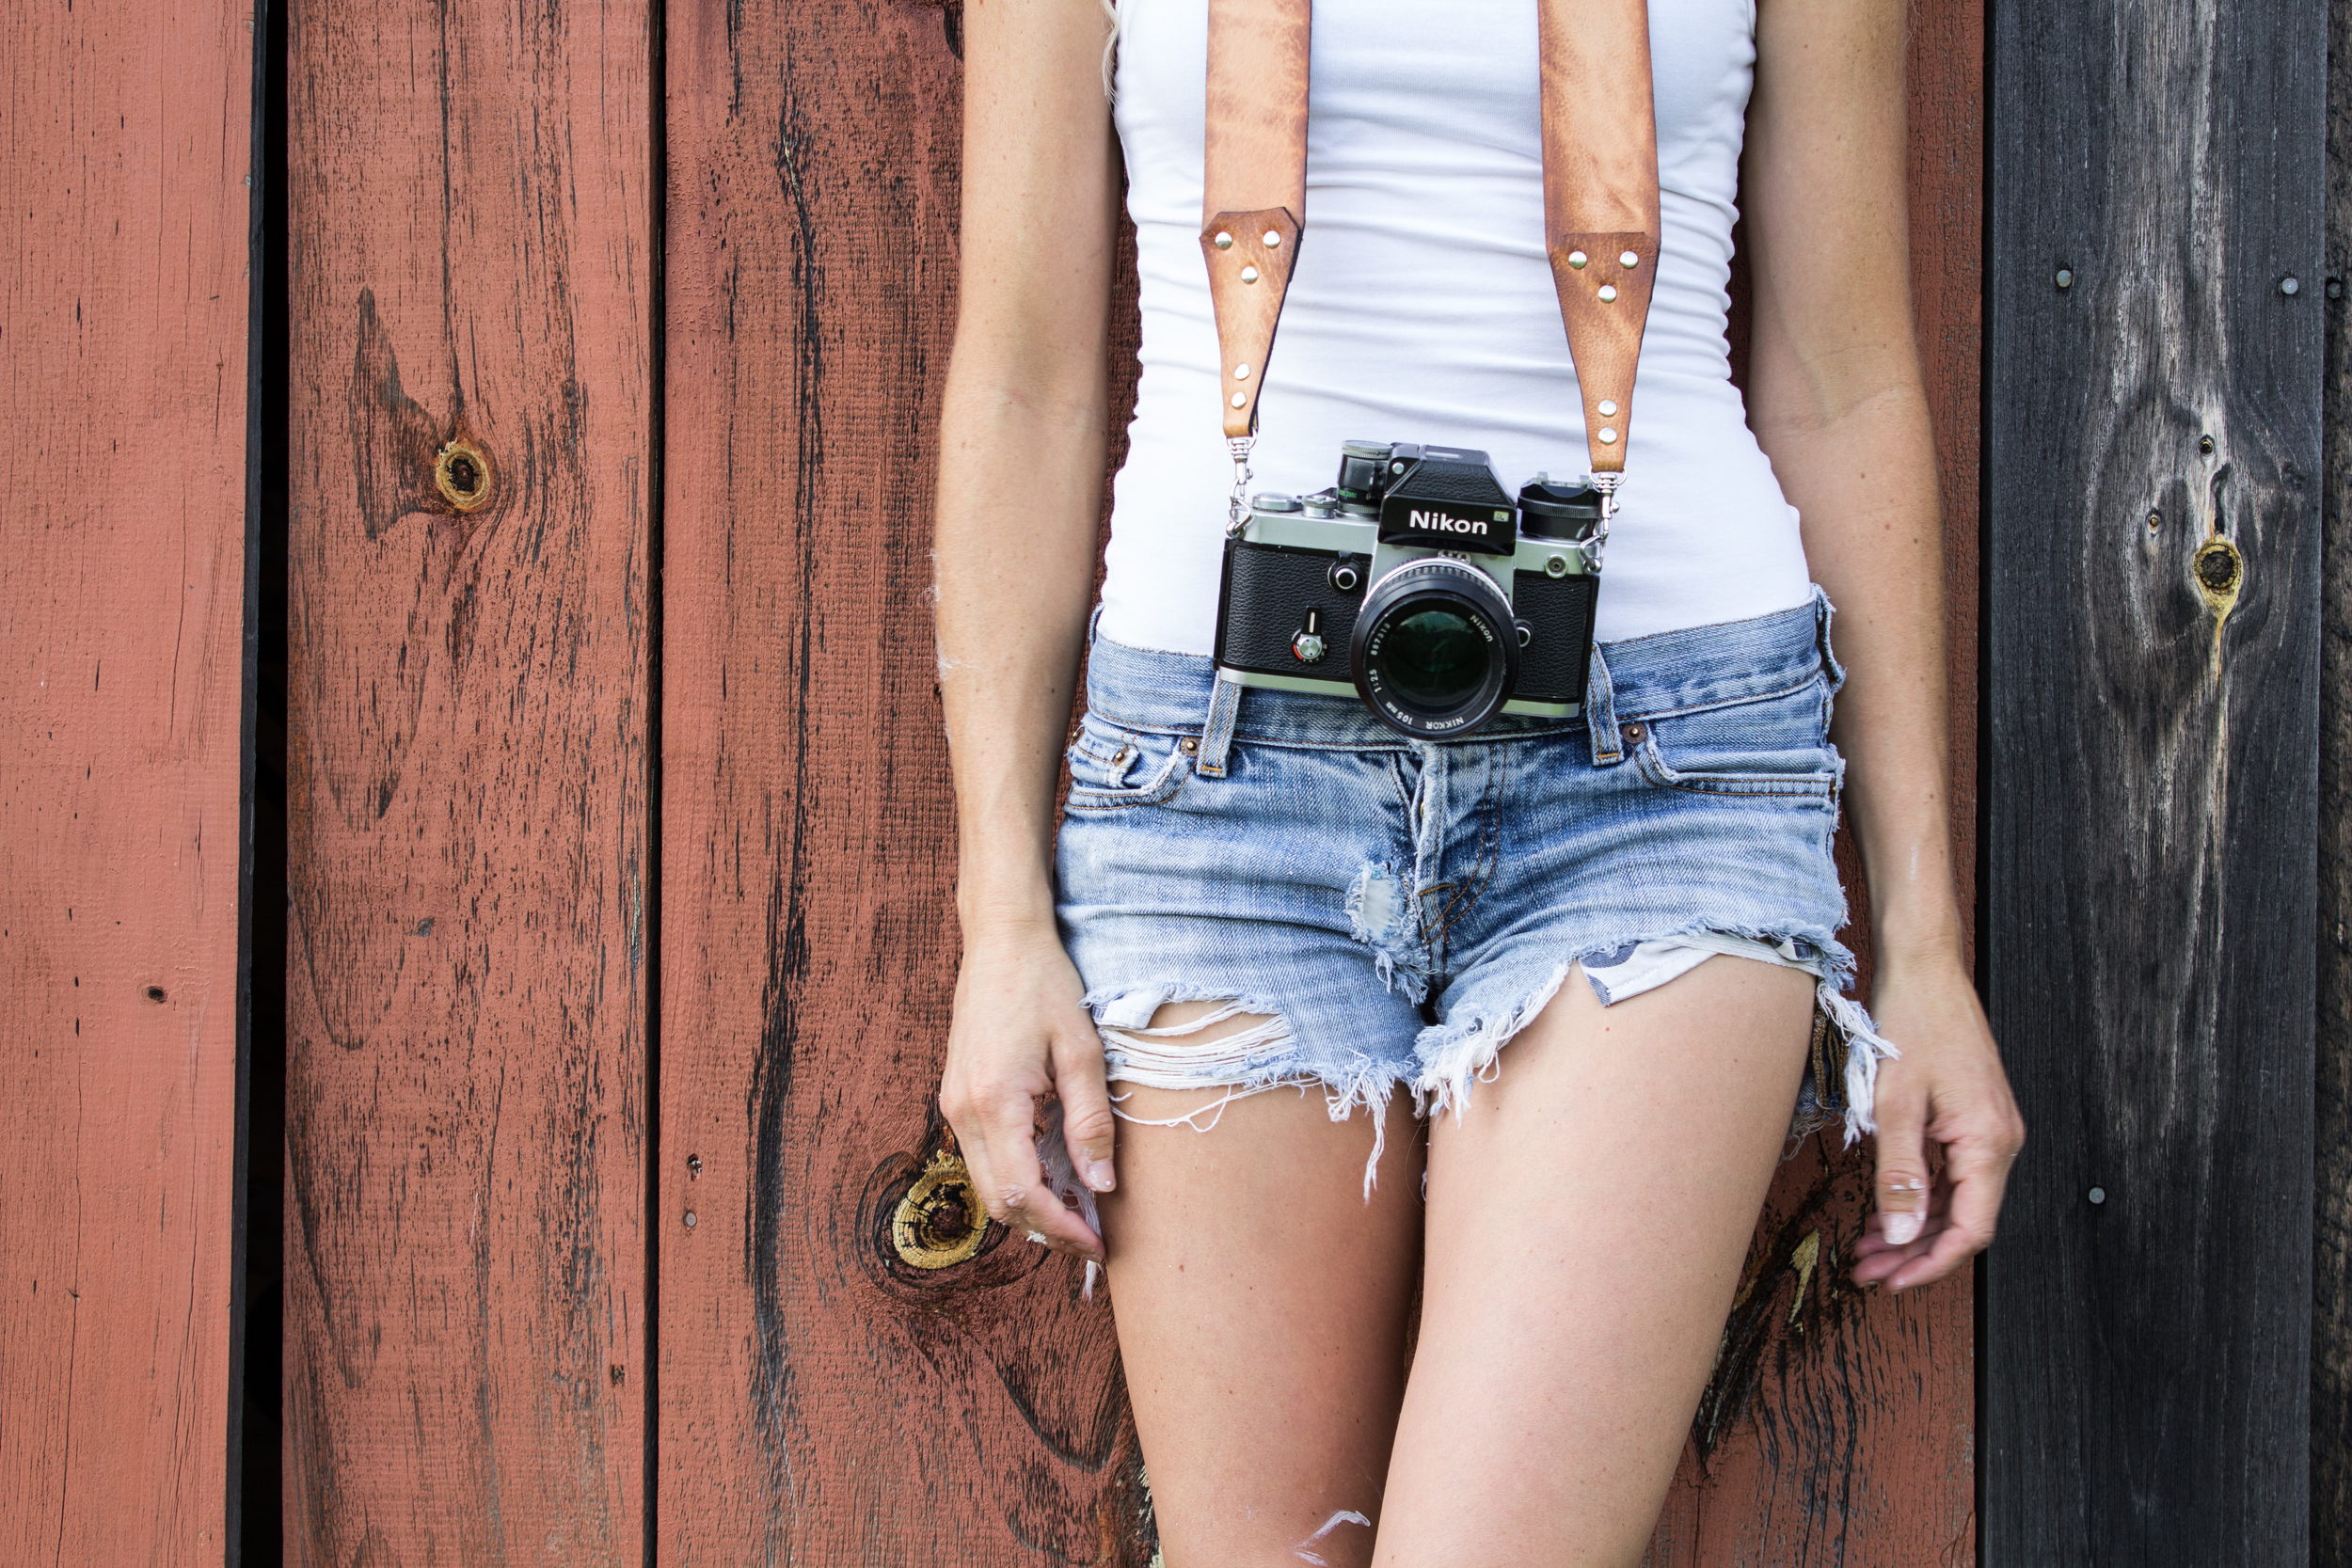 leather-suspender-style-camera-strap-7.jpg